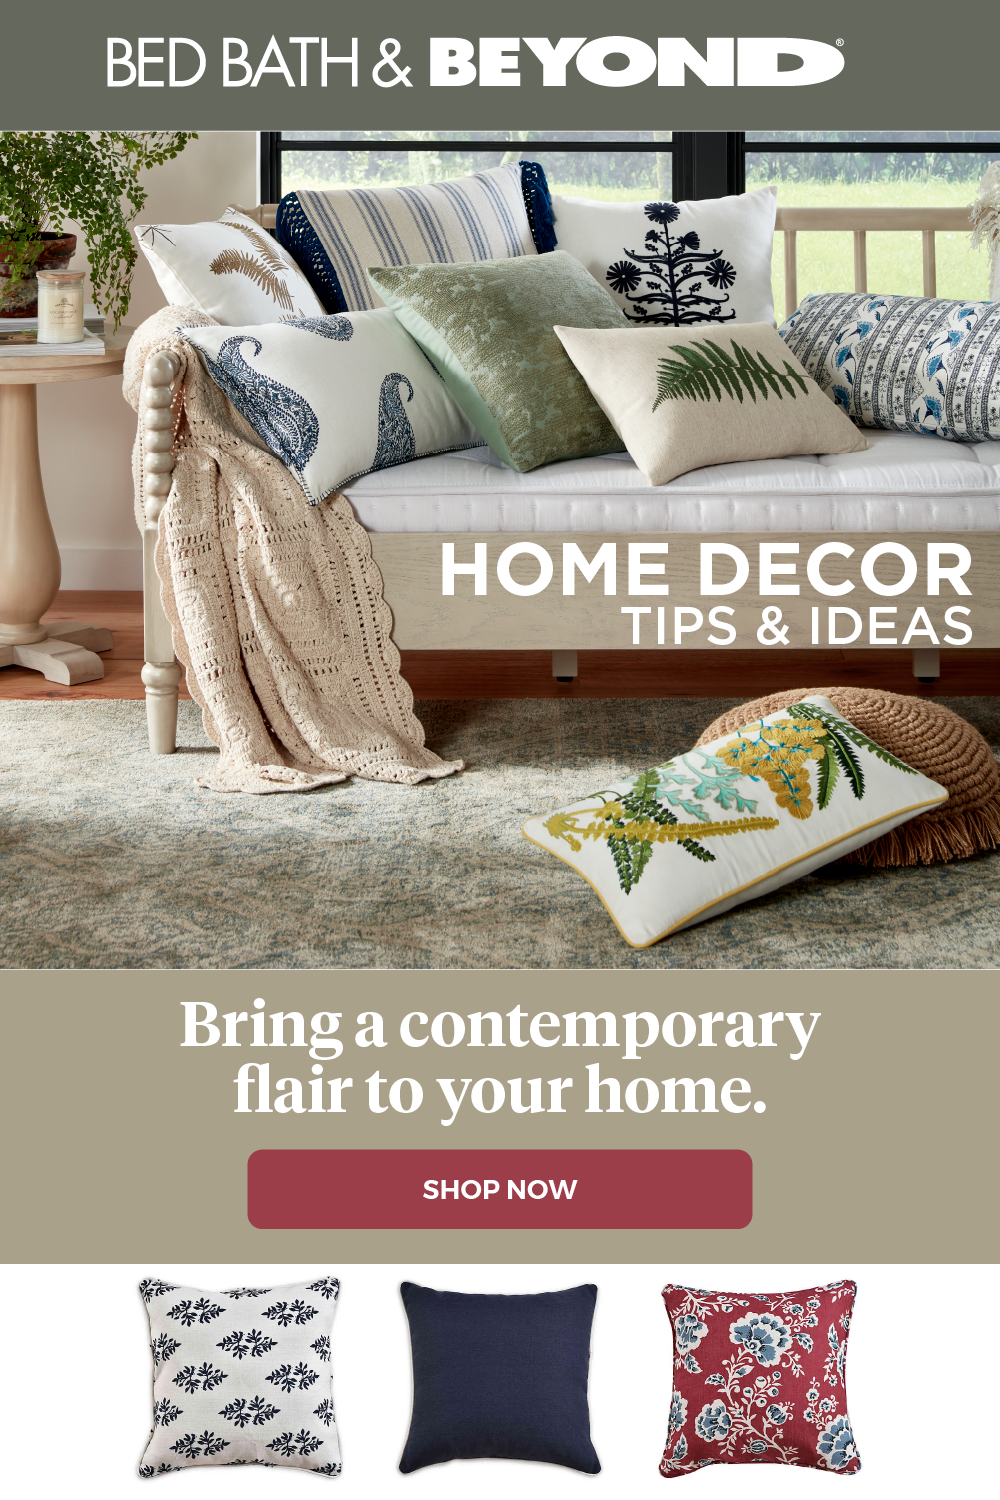 Bring Your Home Decor Ideas To Life With Accessories From Bed Bath Beyond Shop Contemporary Fabric And